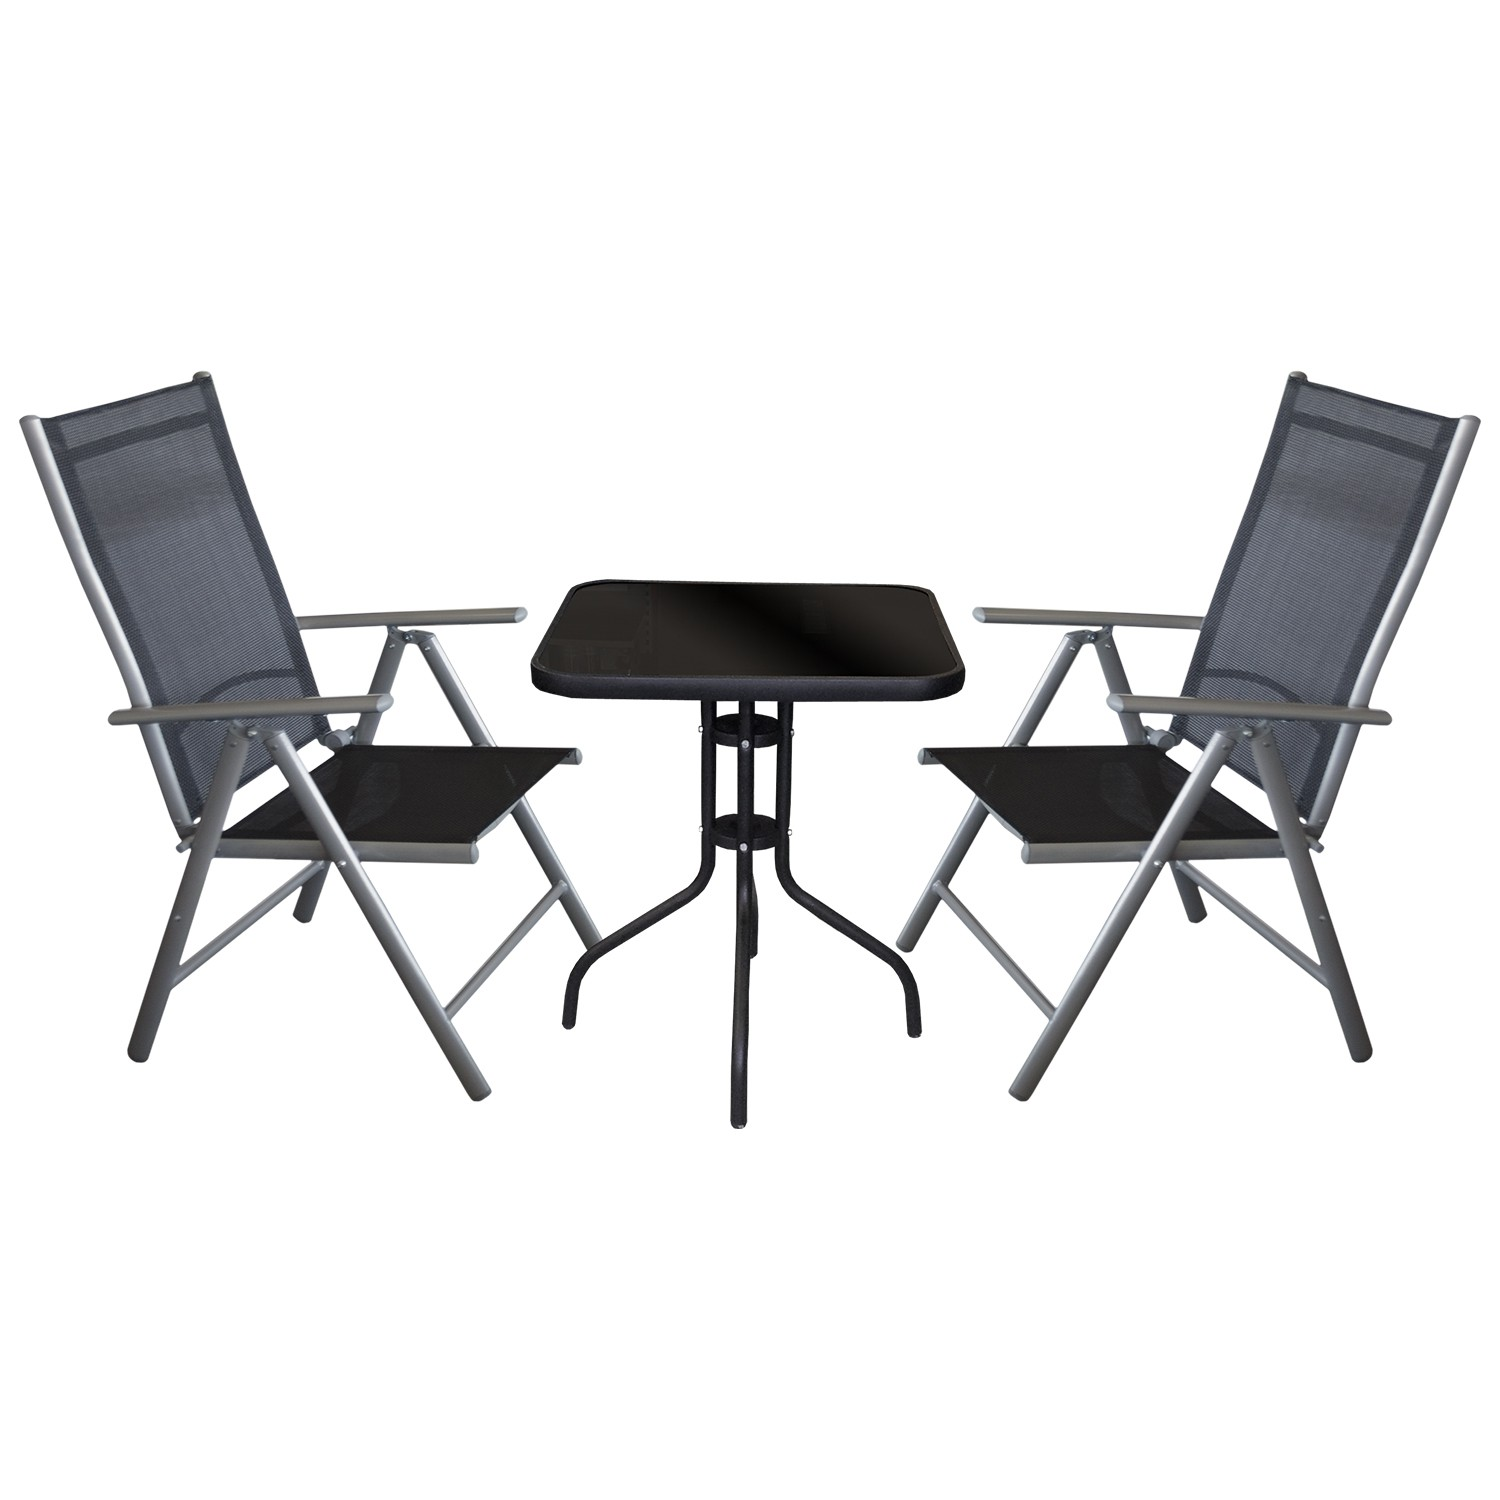 balkonm bel bistro set sitzgruppe 3tlg bistrotisch glas 60x60cm 2x hochlehner ebay. Black Bedroom Furniture Sets. Home Design Ideas